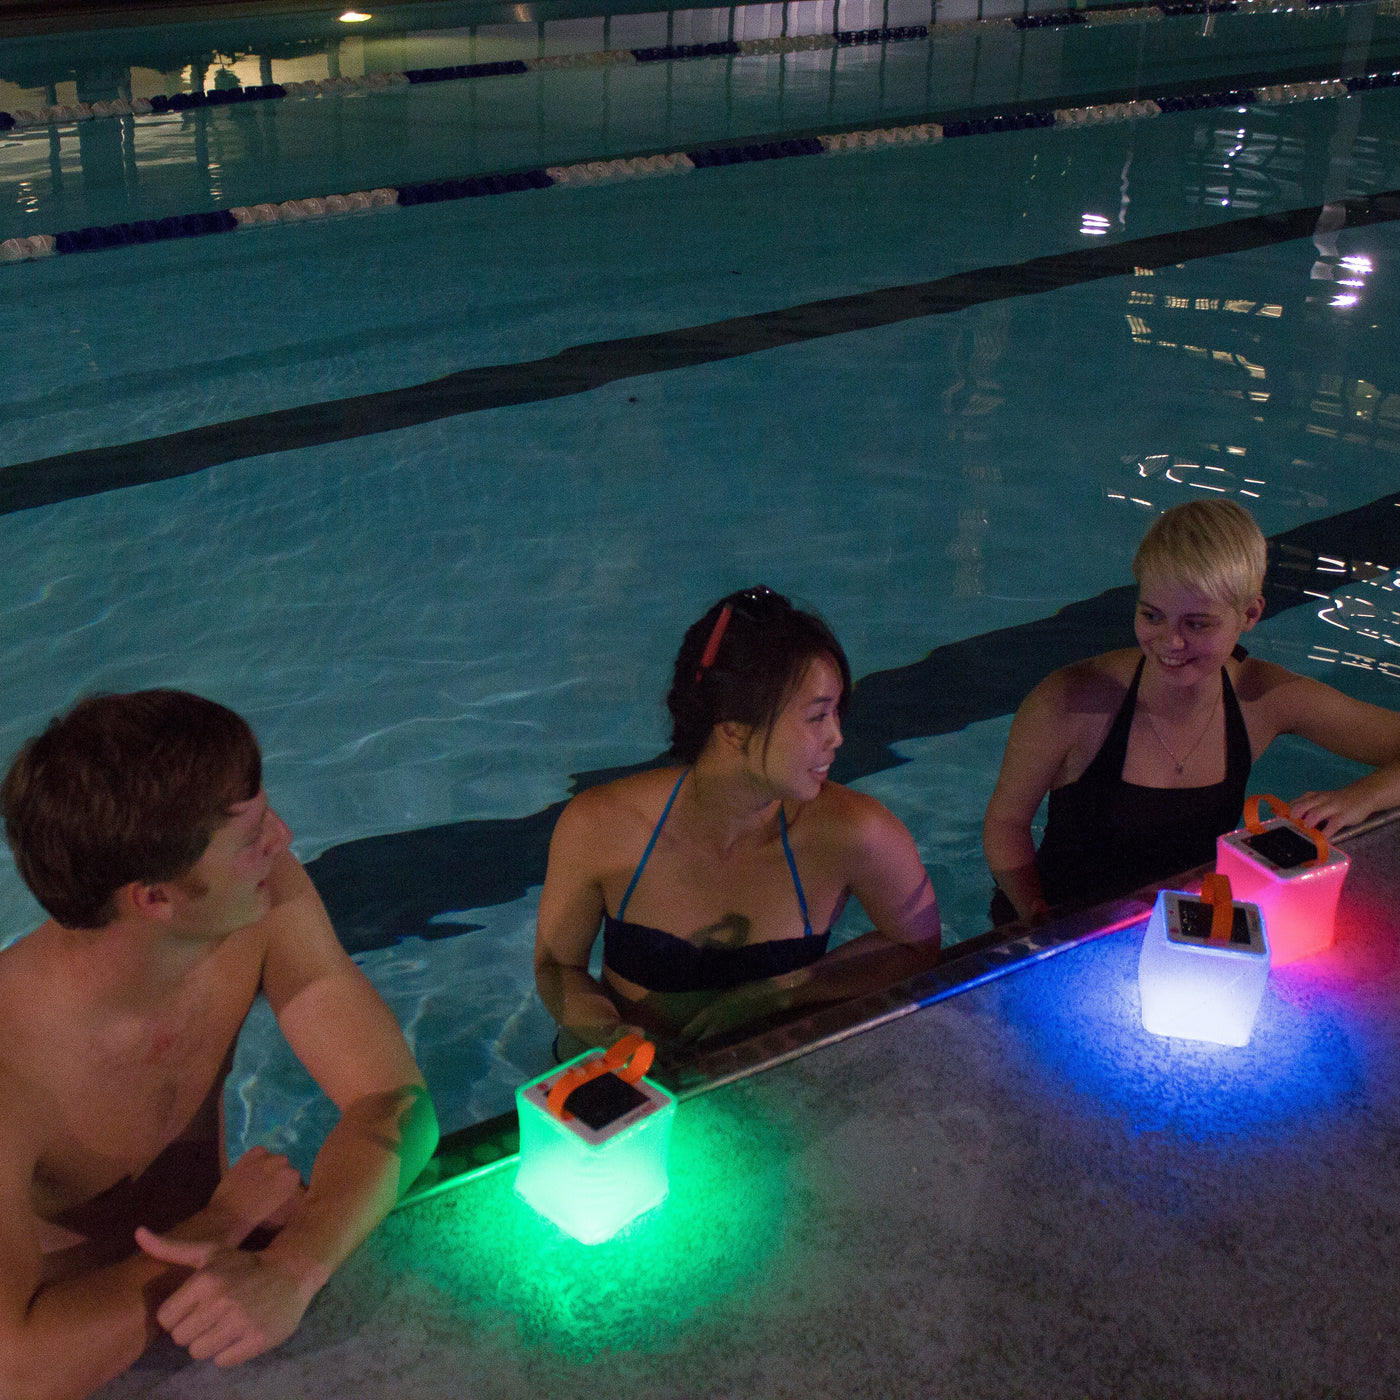 Solar powered swimming pool floating light solar floating light - Pool Lights